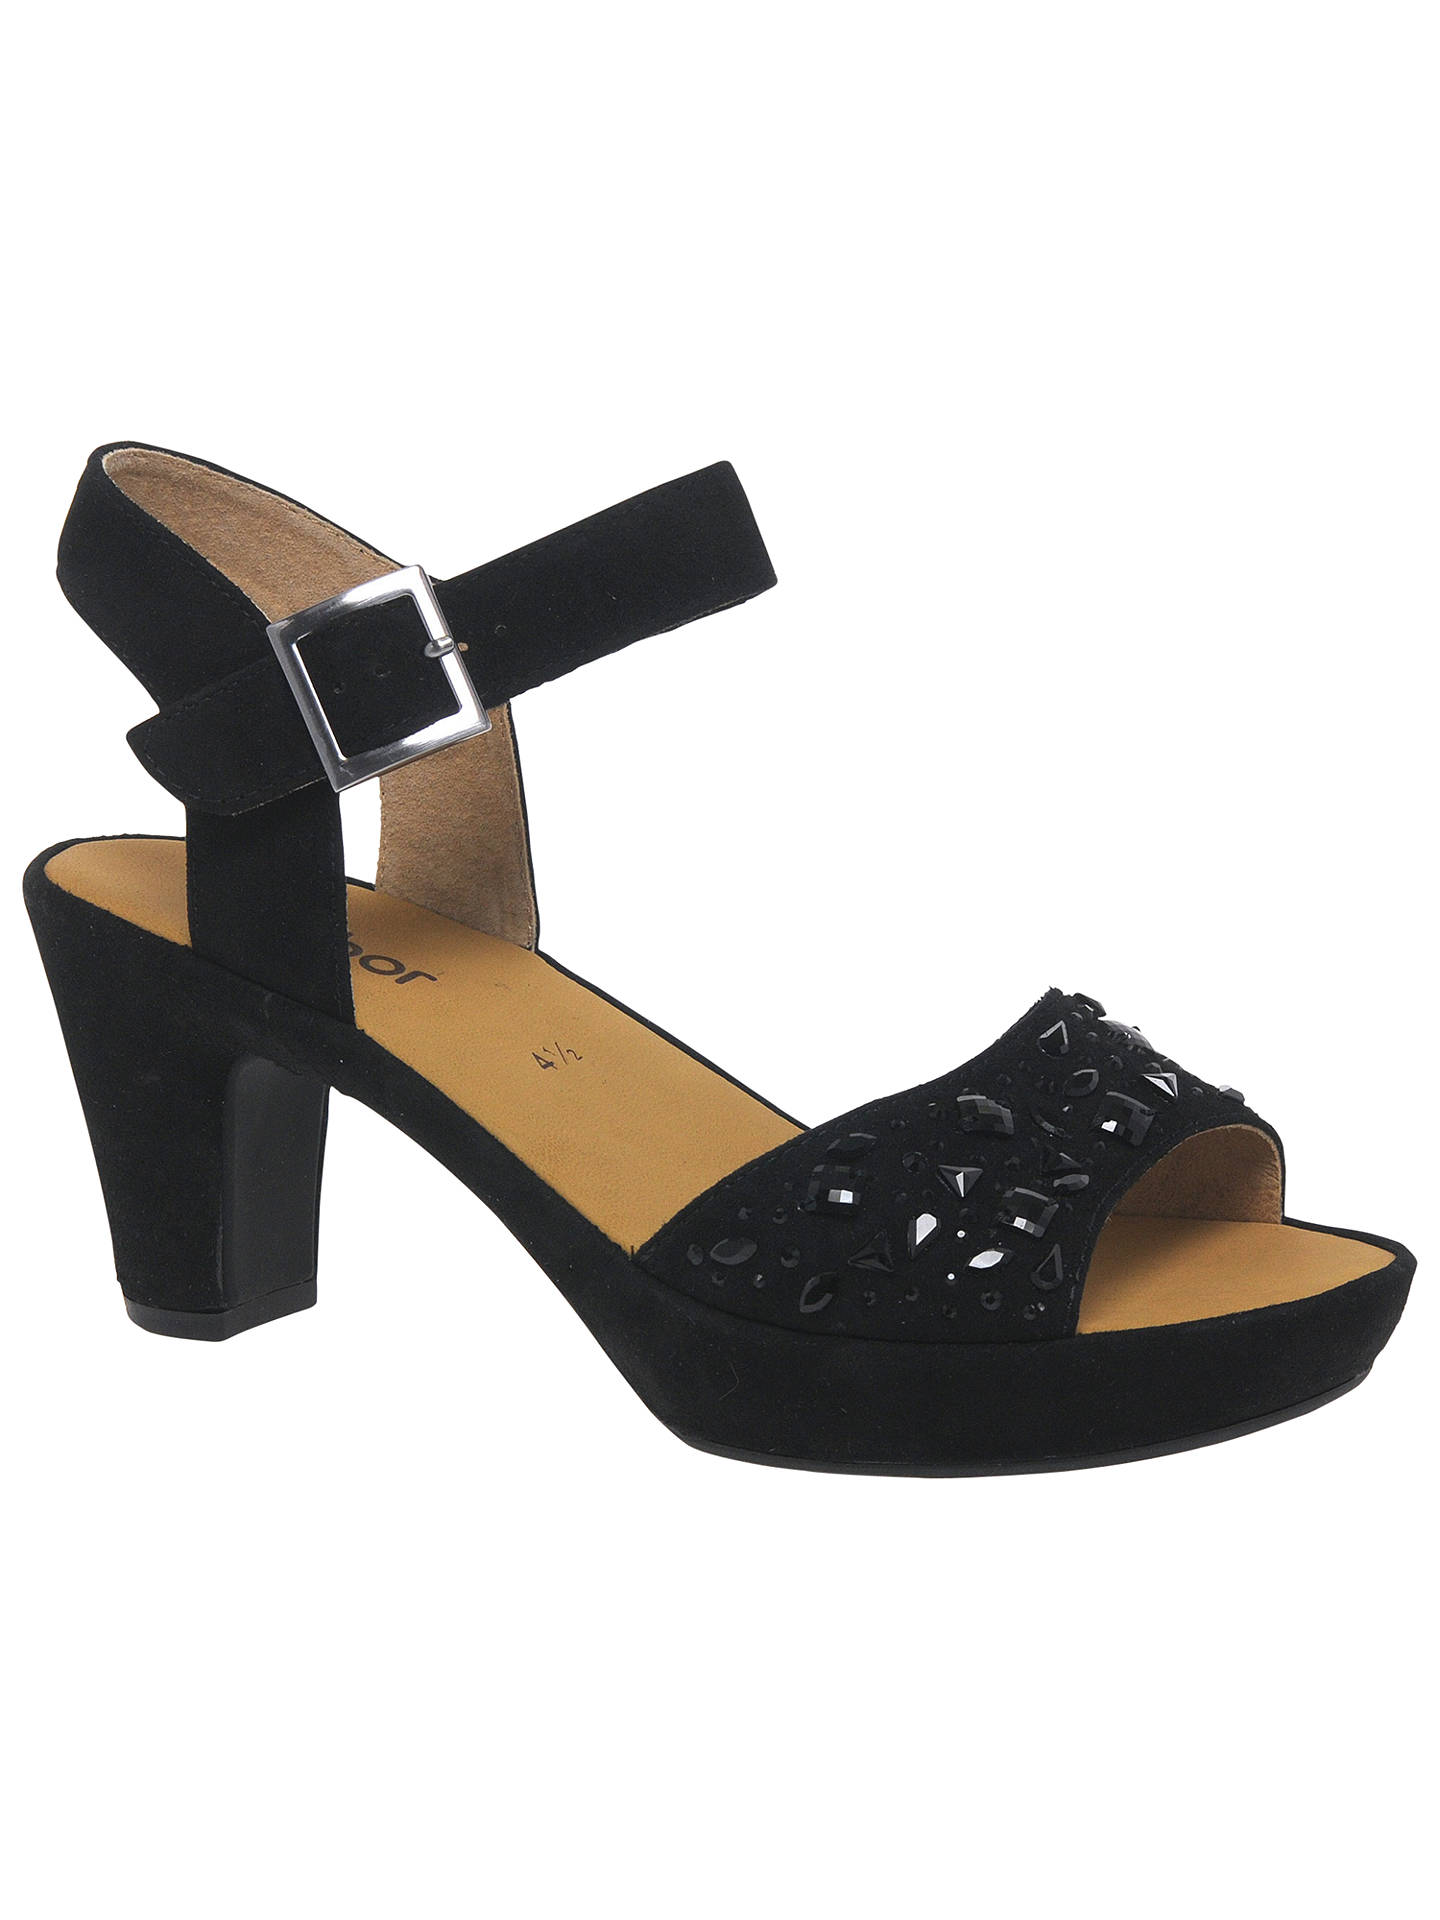 9d2b39bc9319e Buy Gabor Abe Embellished Block Heeled Sandals, Black Suede, 3 Online at  johnlewis.